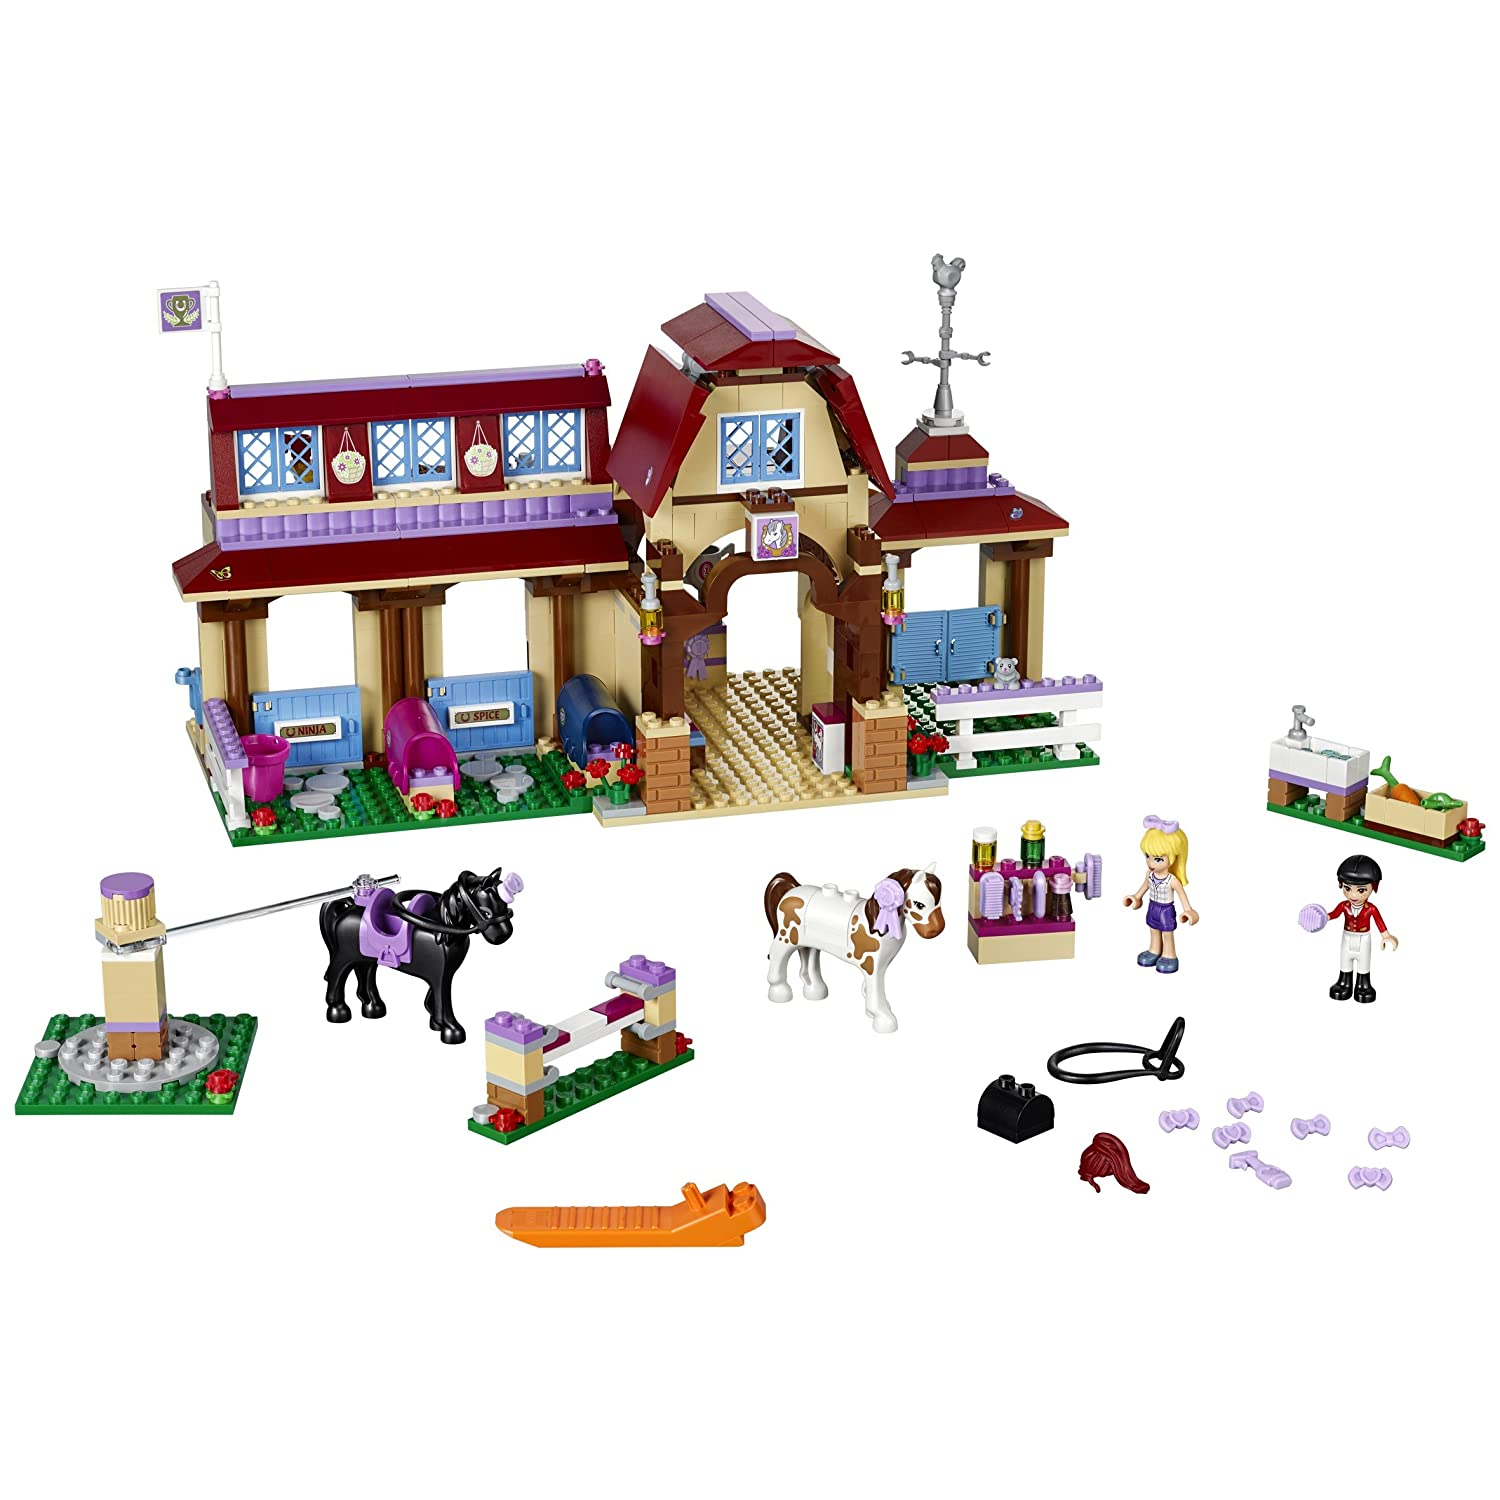 Lego 41126 Friends Heartlake Riding Club Toys Games Blok Creative Isi 100 Pcs